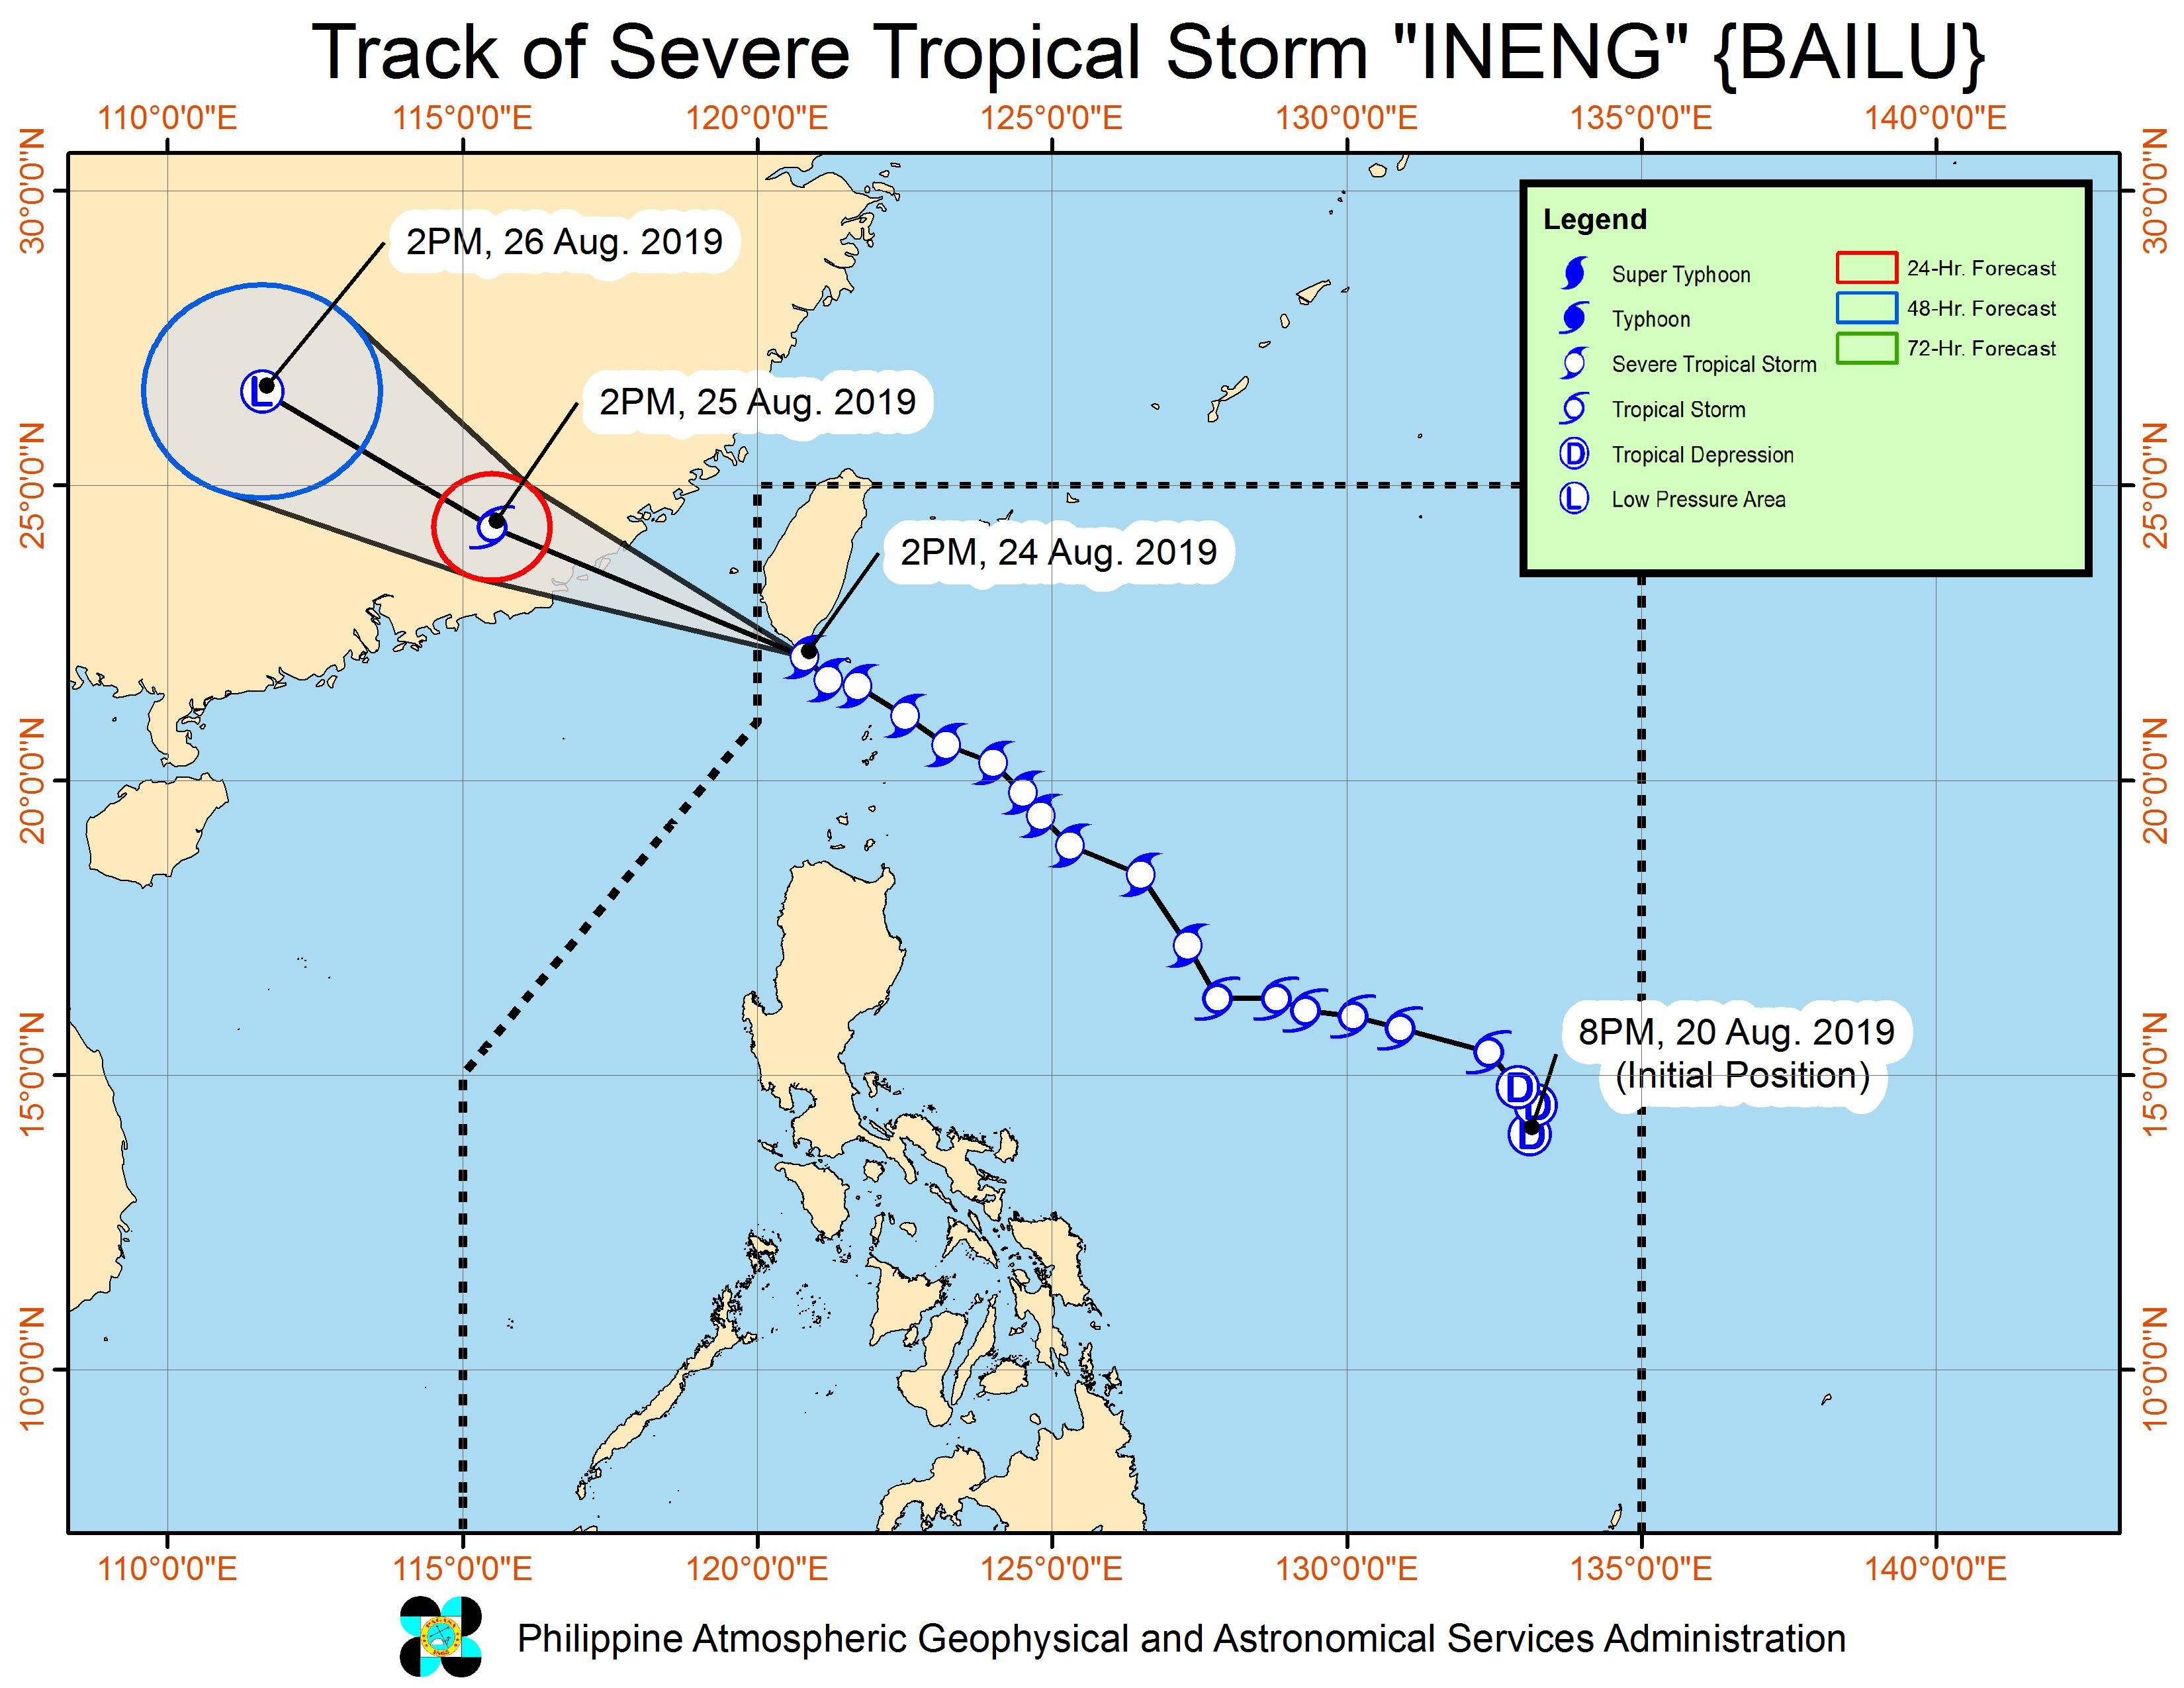 Forecast track of Severe Tropical Storm Ineng (Bailu) as of August 24, 2019, 5 pm. Image from PAGASA